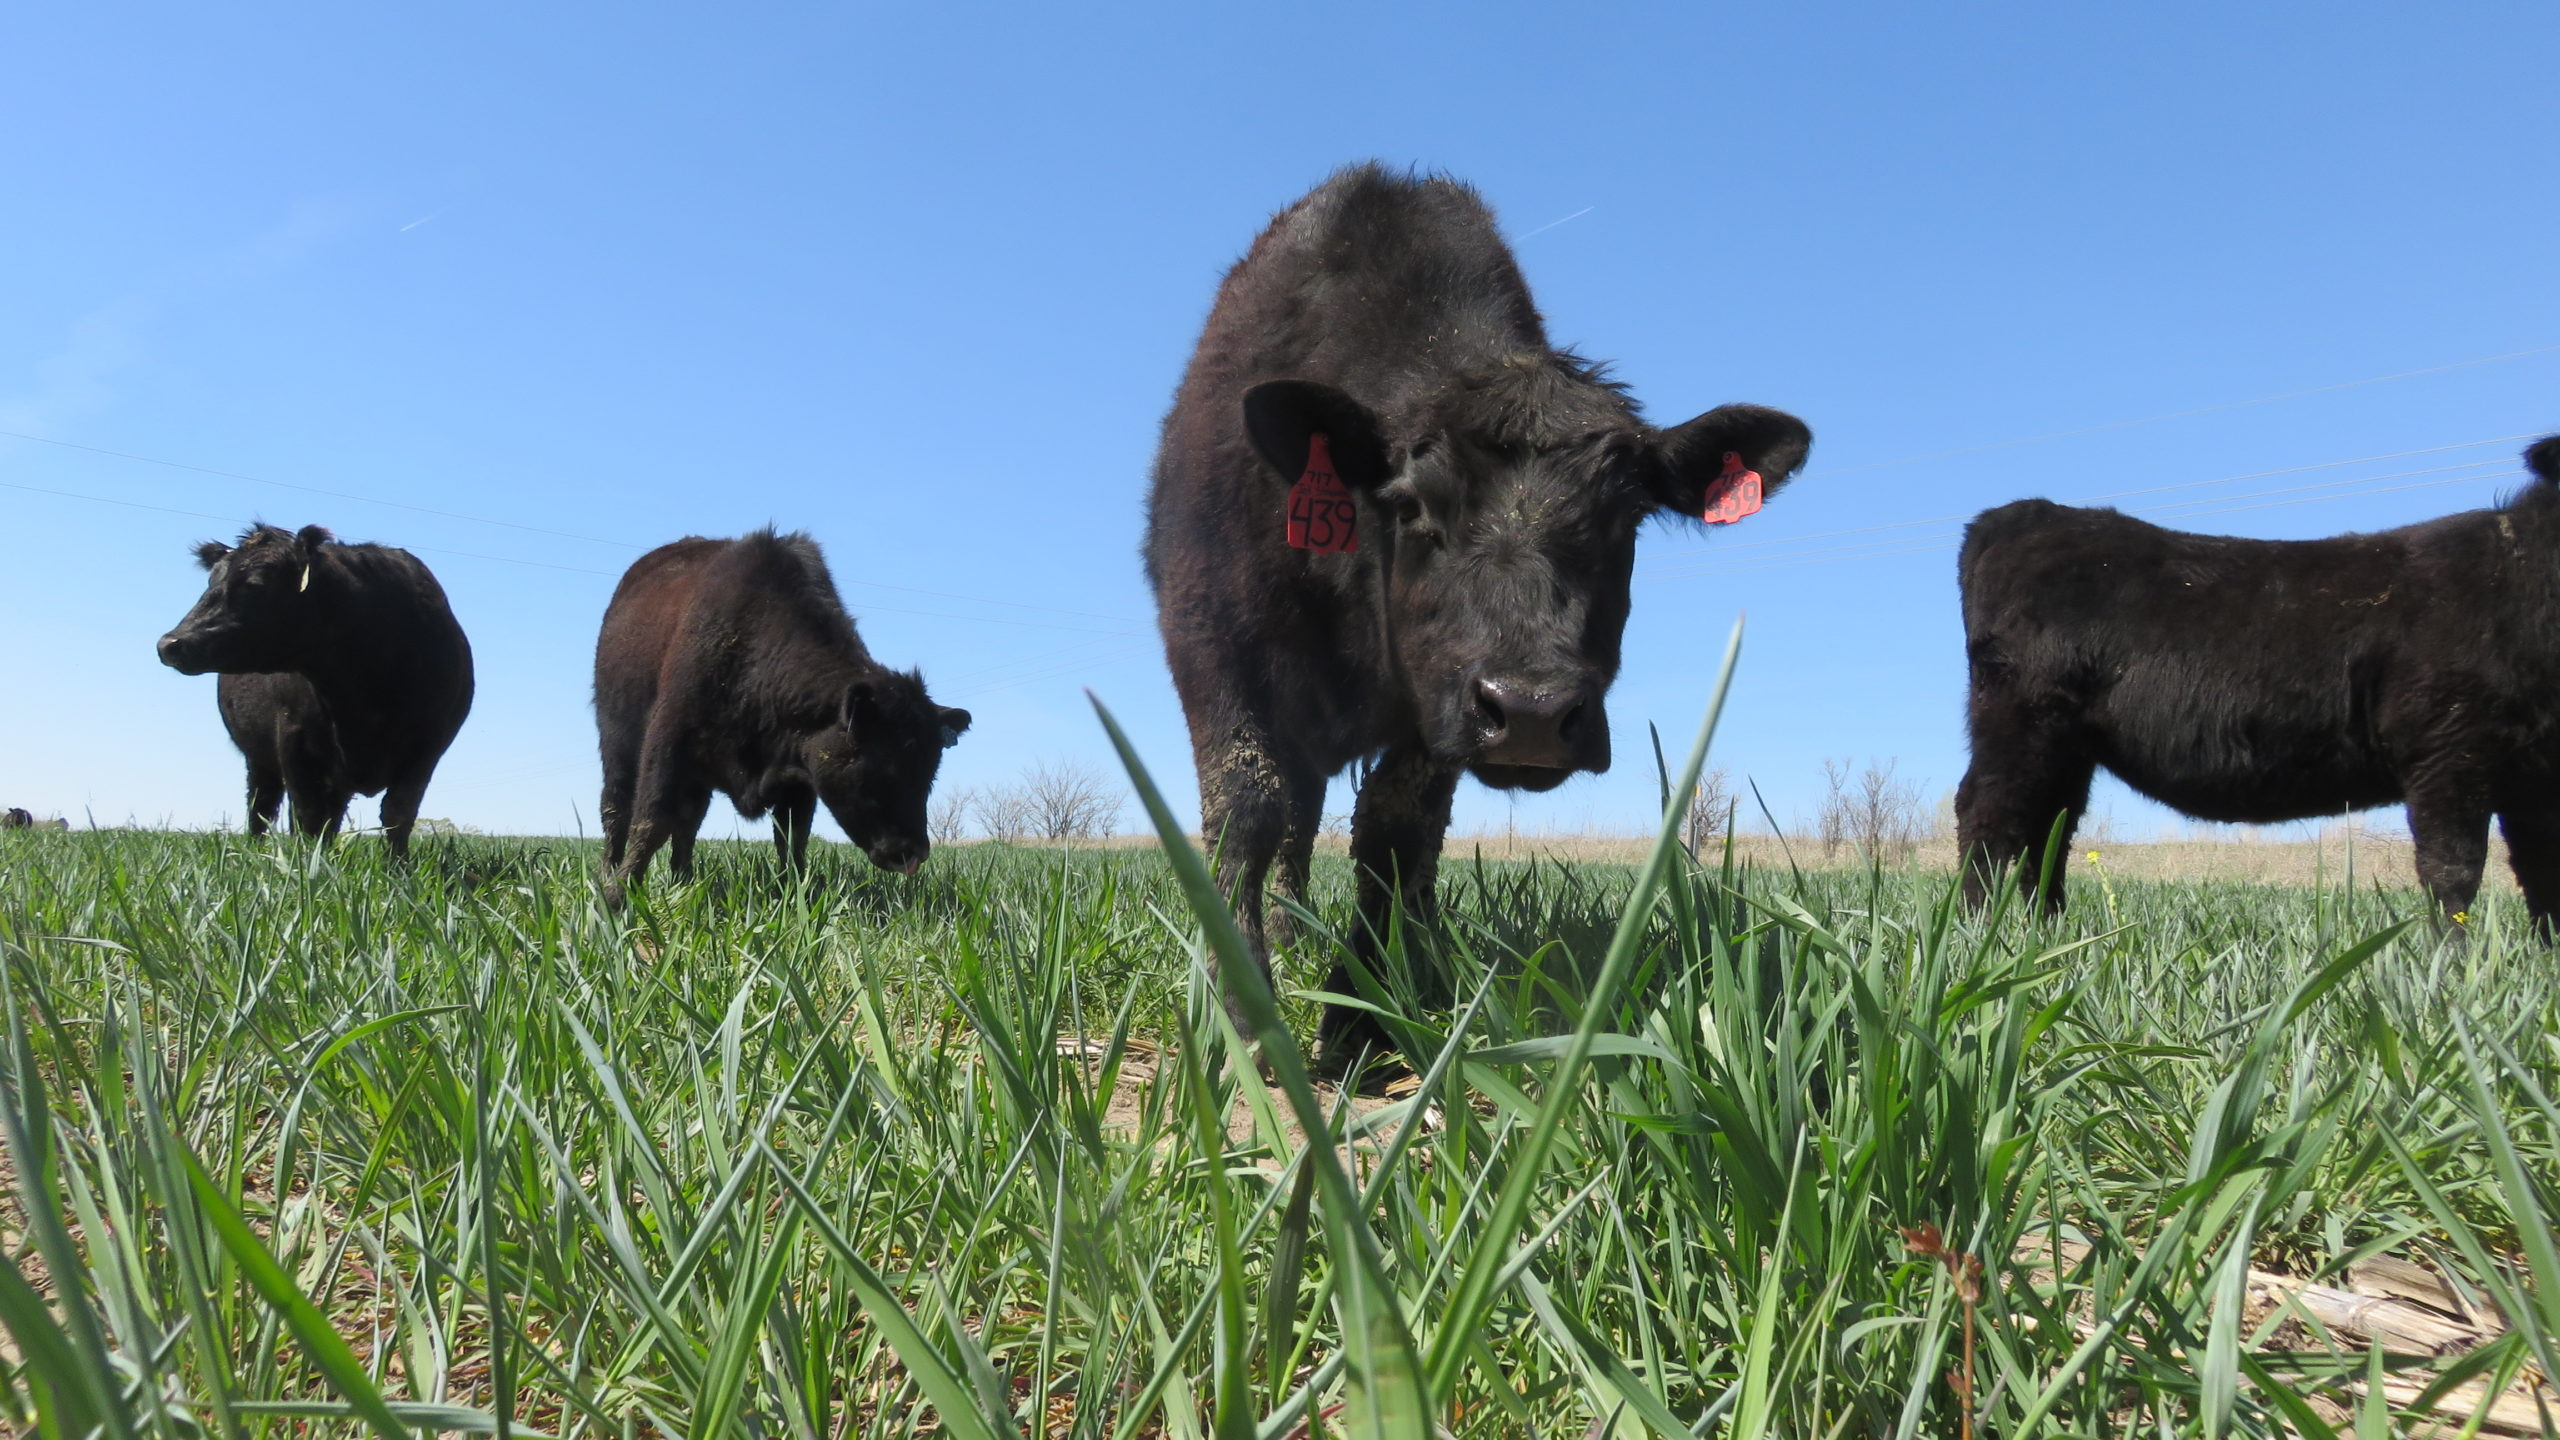 Image of cow looking into the camera with three other cows nearby in the background